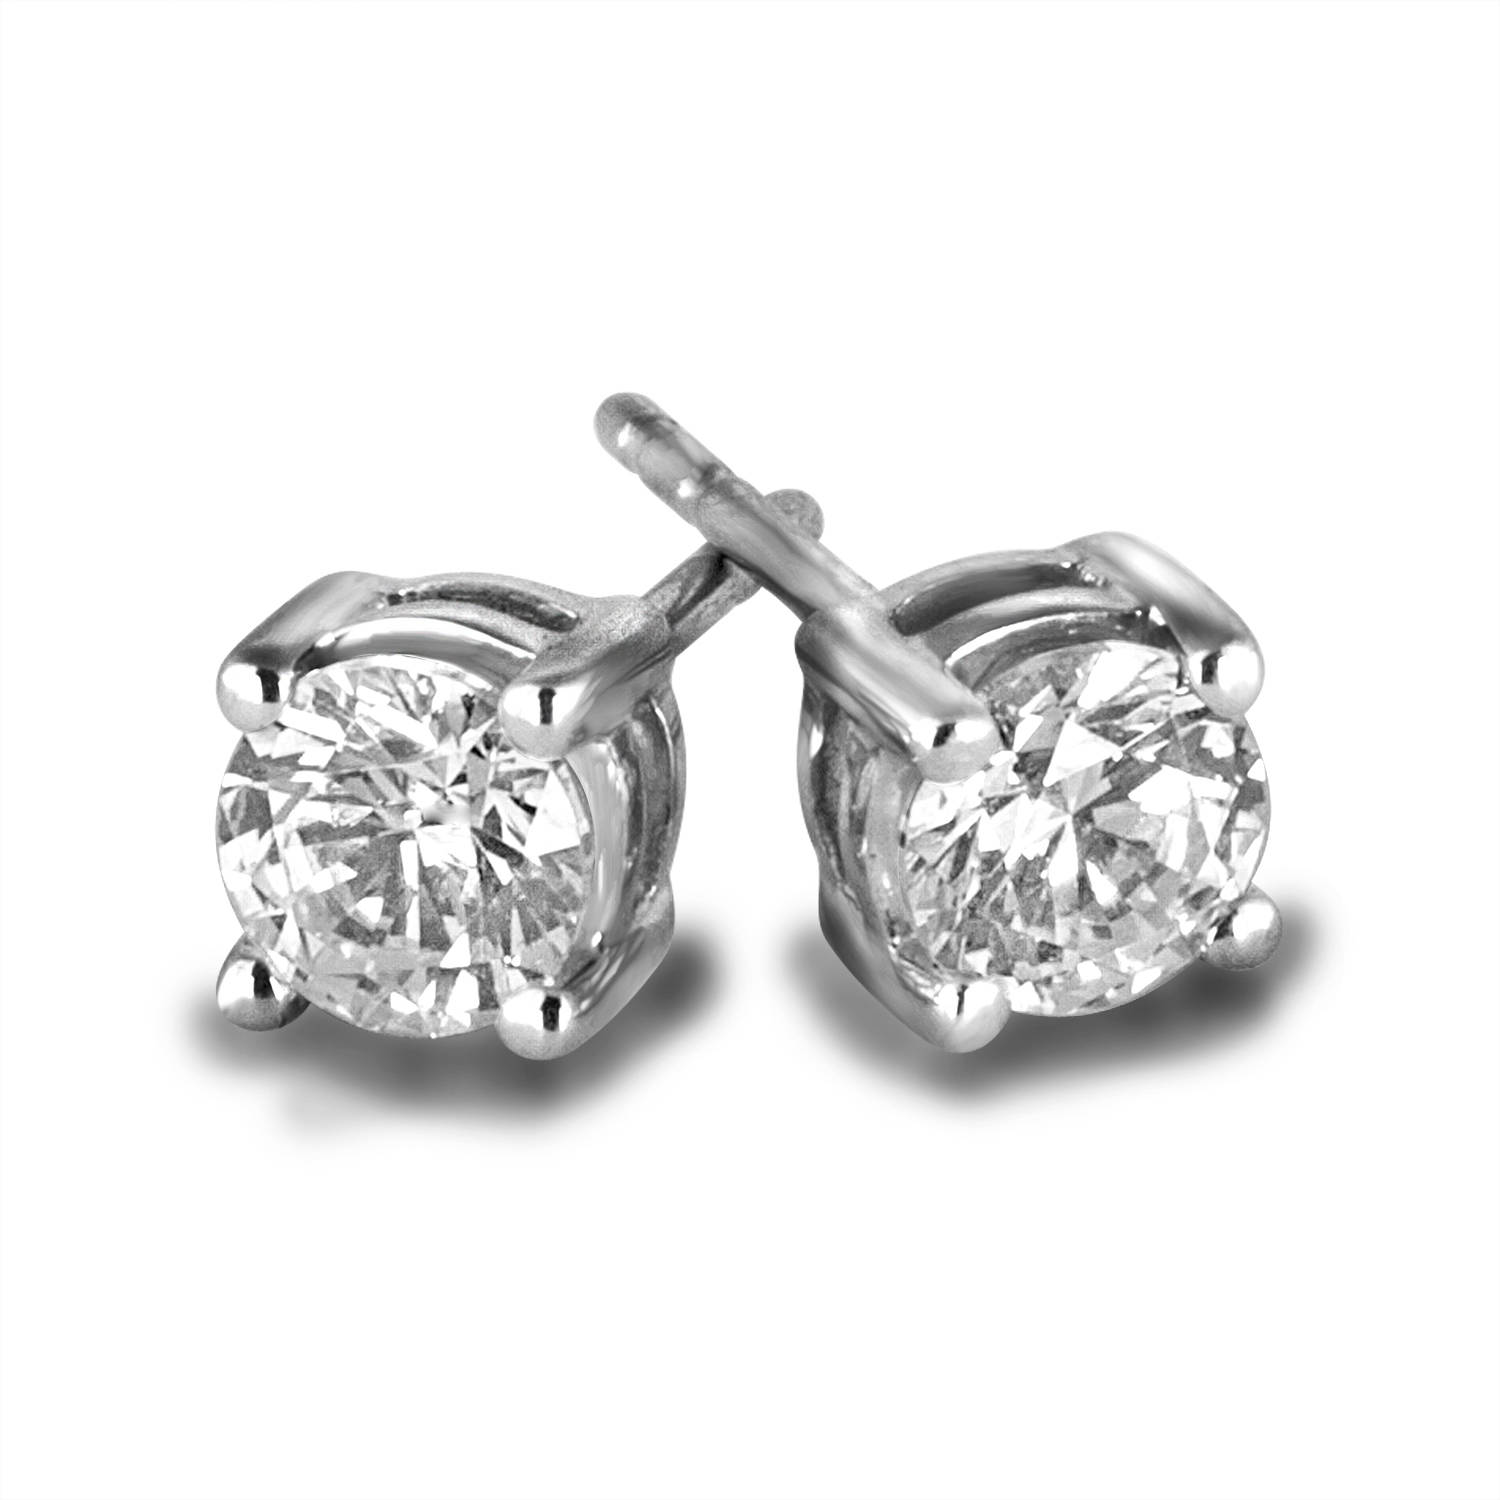 3/4 Carat T.W. Round Diamond 10kt White Gold Stud Earrings